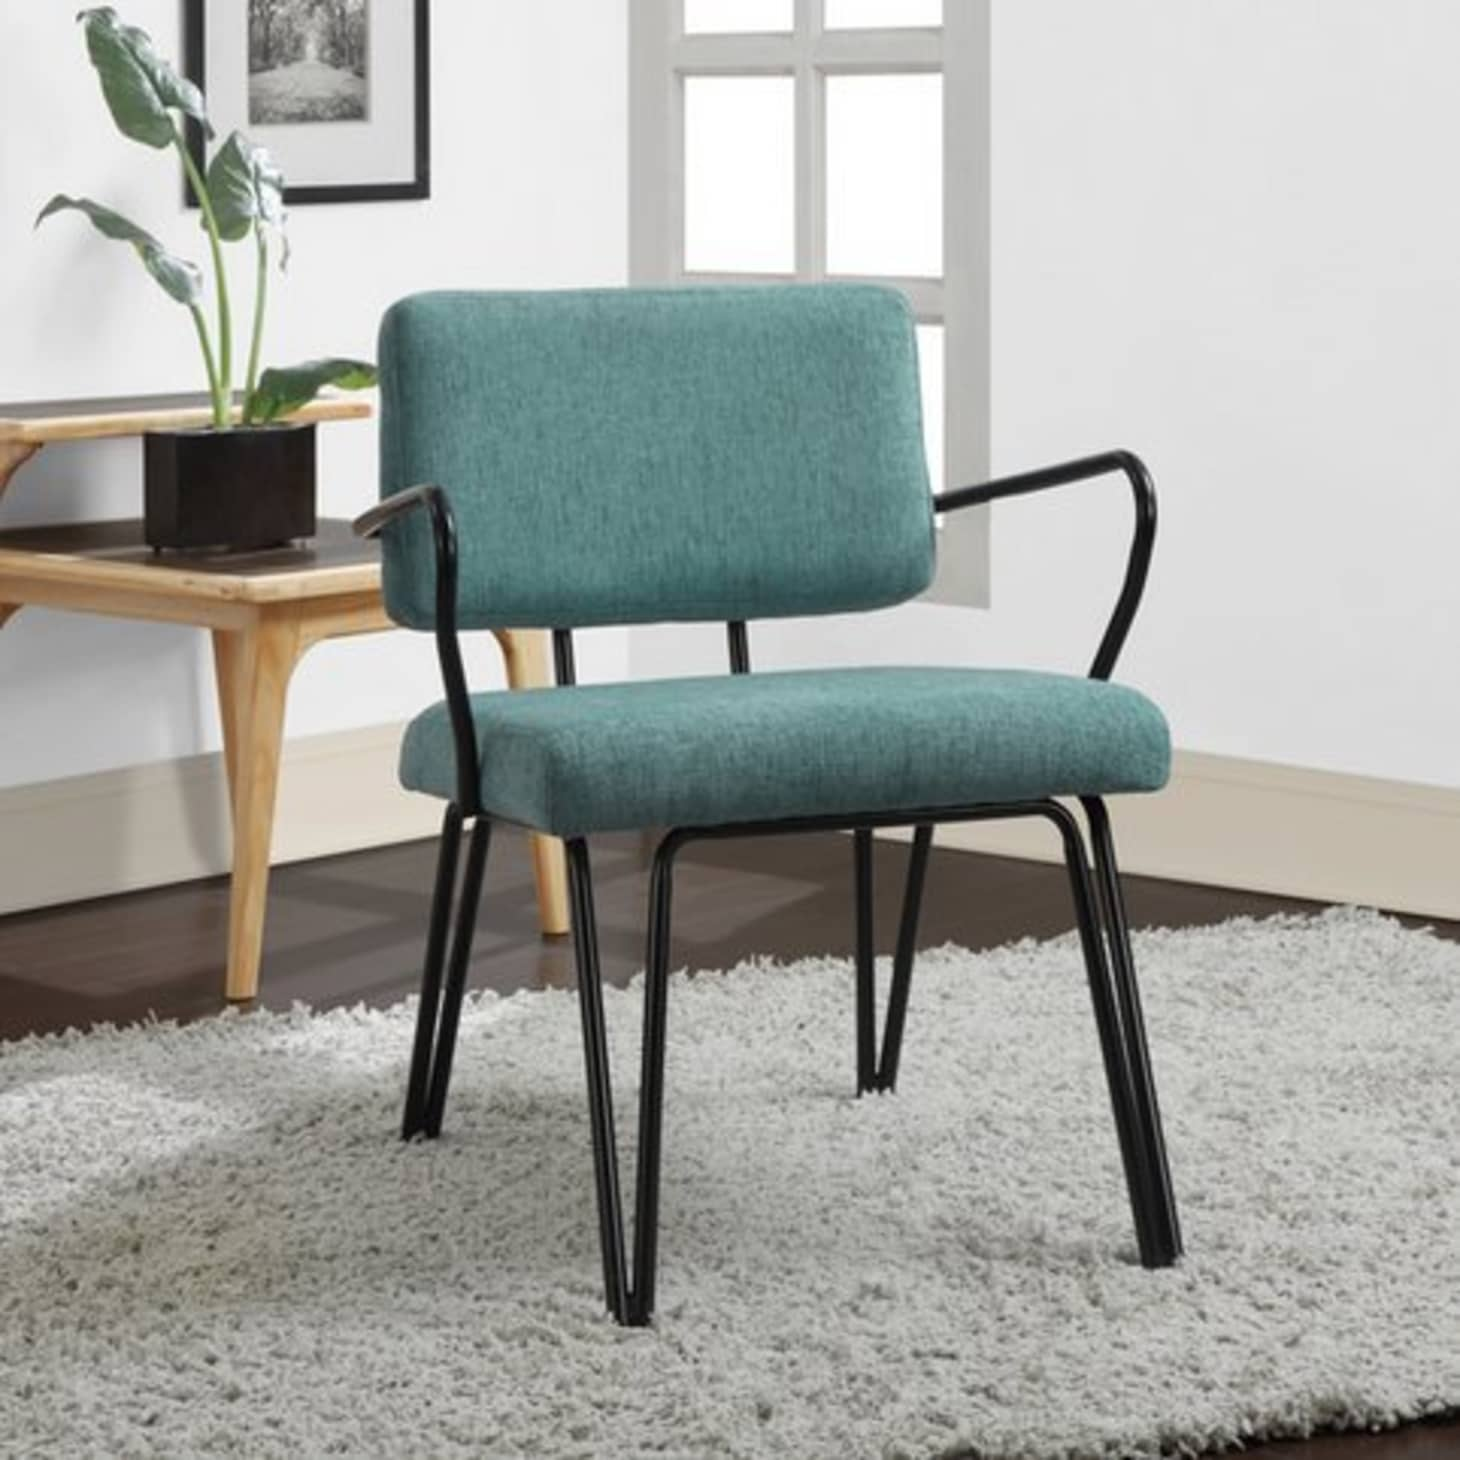 Living Room With Mismatched Accent Chairs: The Best Living Room & Accent Chairs Under $200